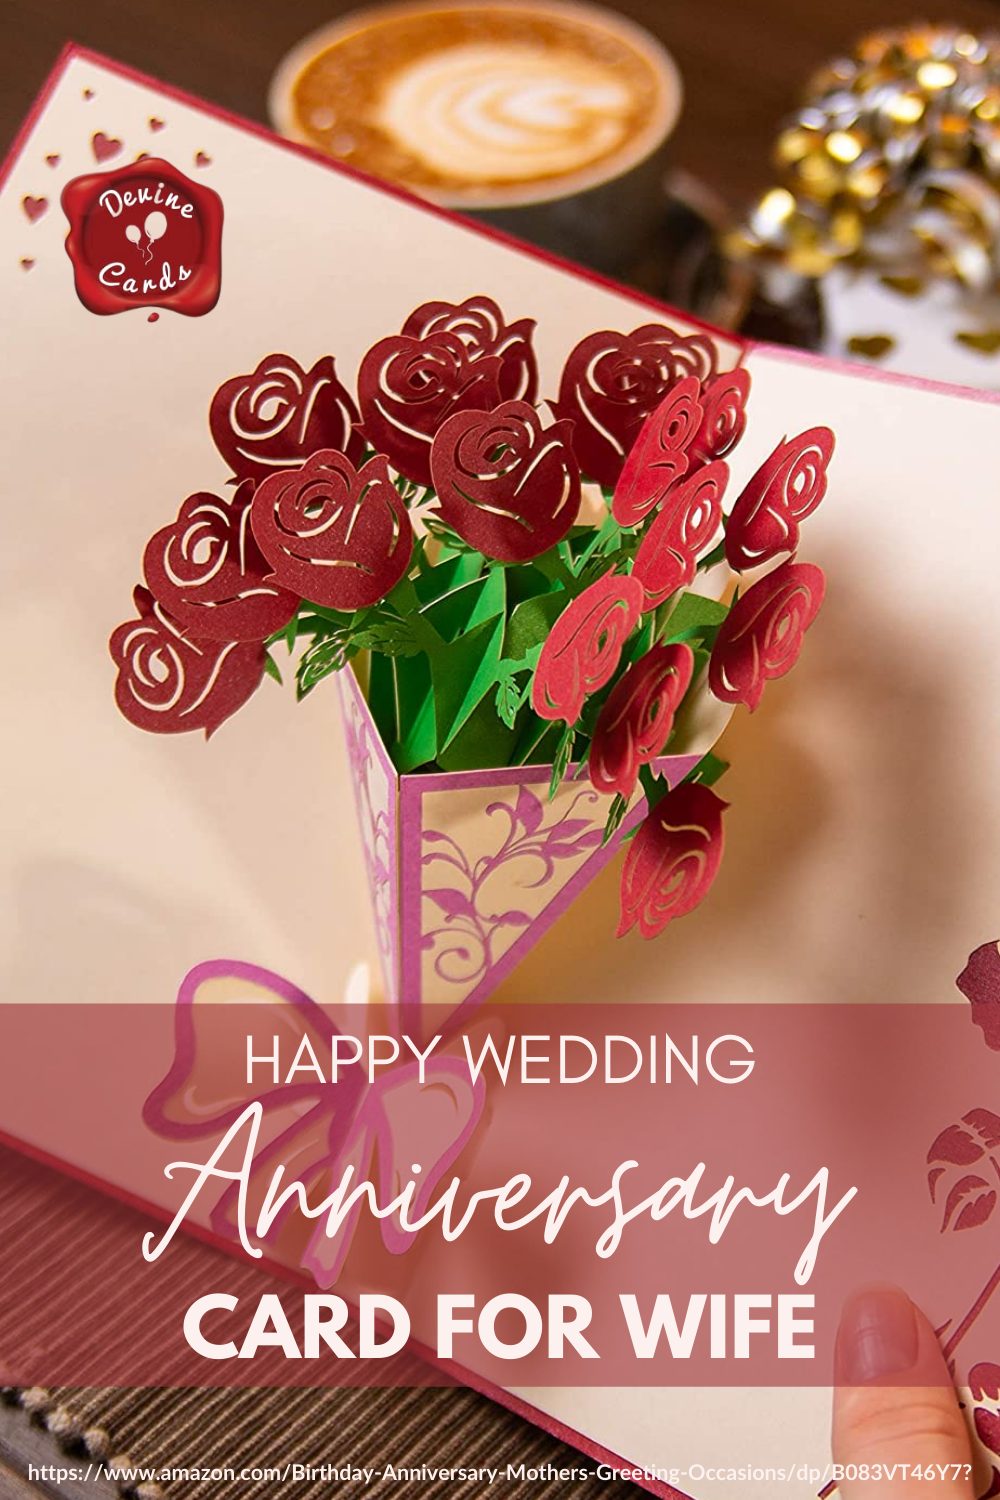 Happy Wedding Anniversary Card For Wife Happy Wedding Anniversary Cards Anniversary Cards For Wife Love Pop Up Cards